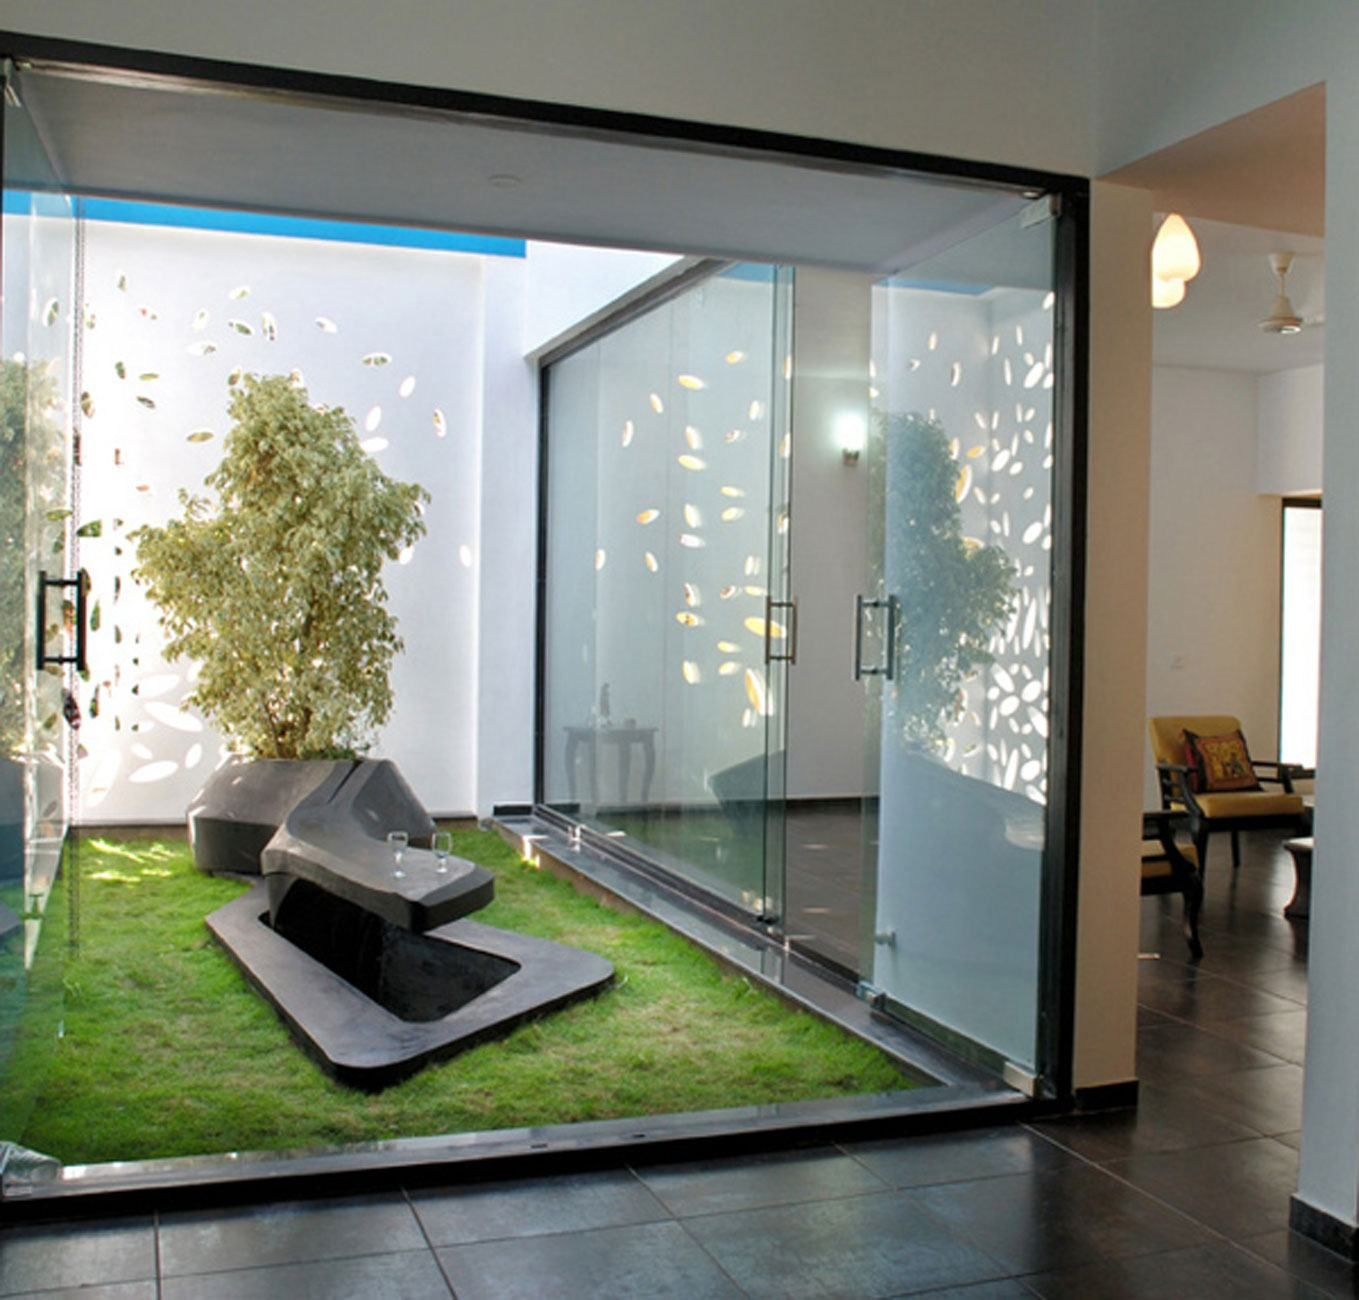 Garden with modern glazed home interior designs home for Interior courtyard design ideas